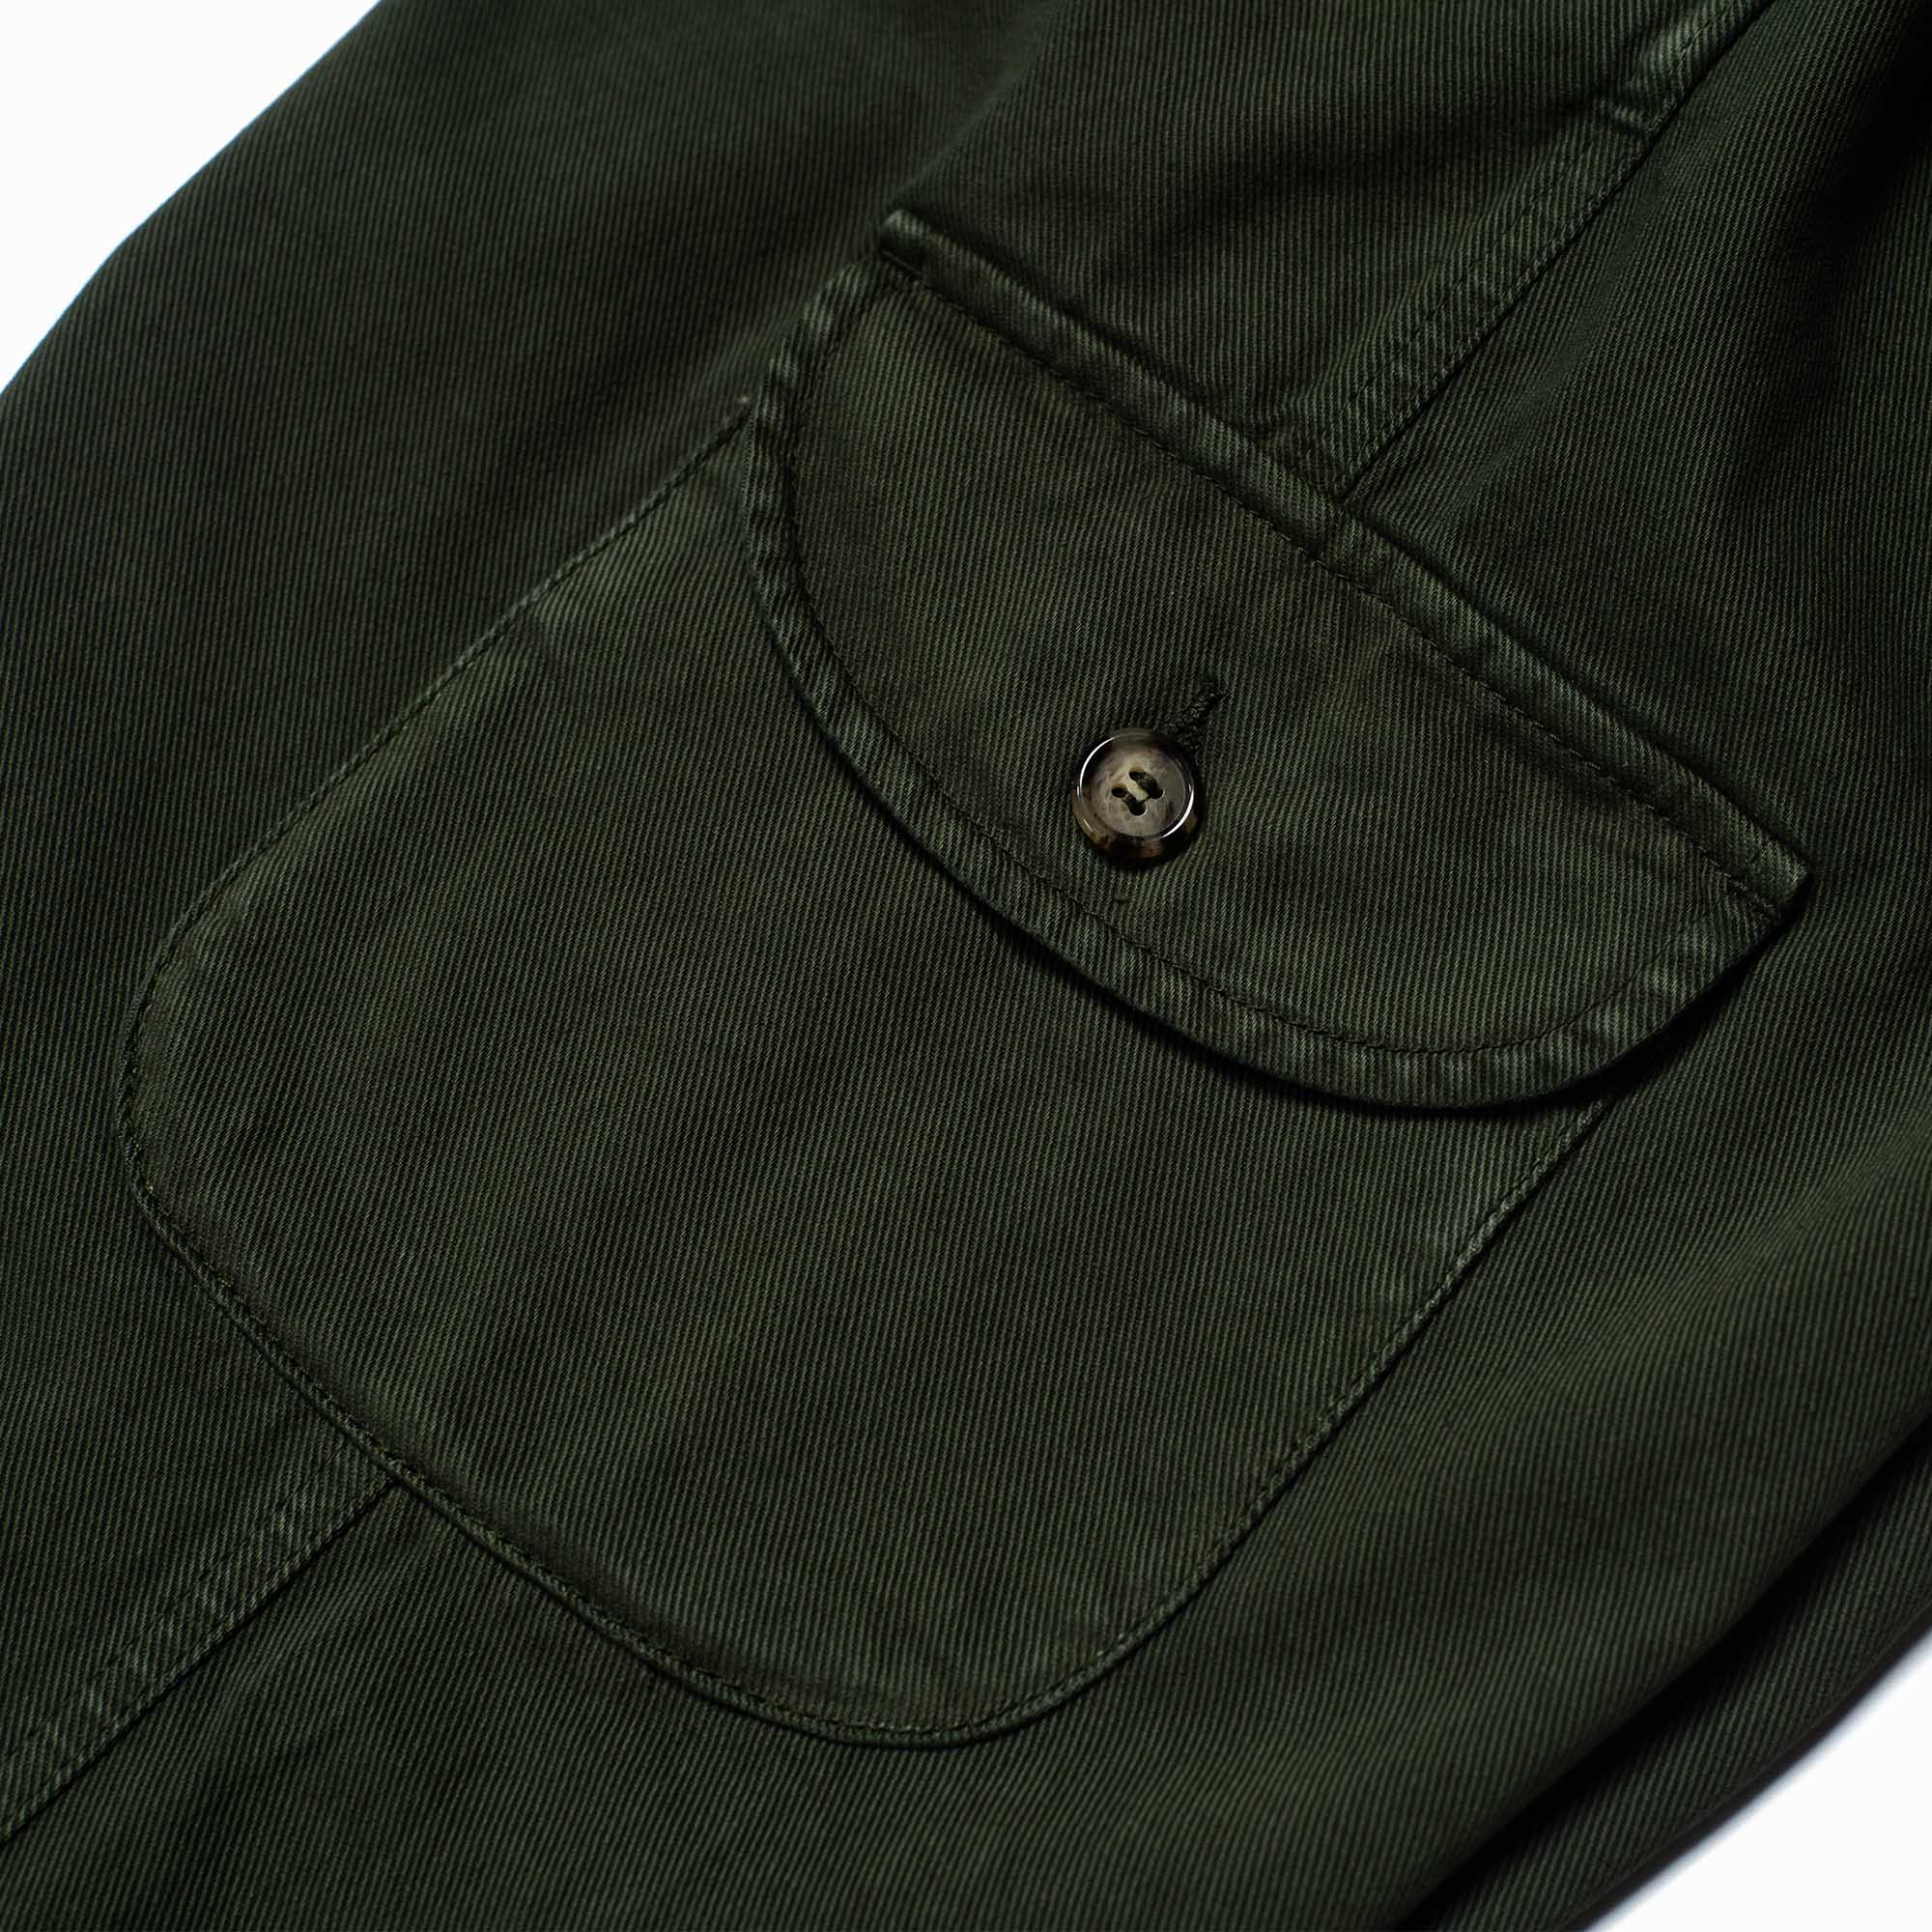 shangri-la-heritage-explorator-olive-cotton-twill-pants-still-life-cargo-pocket